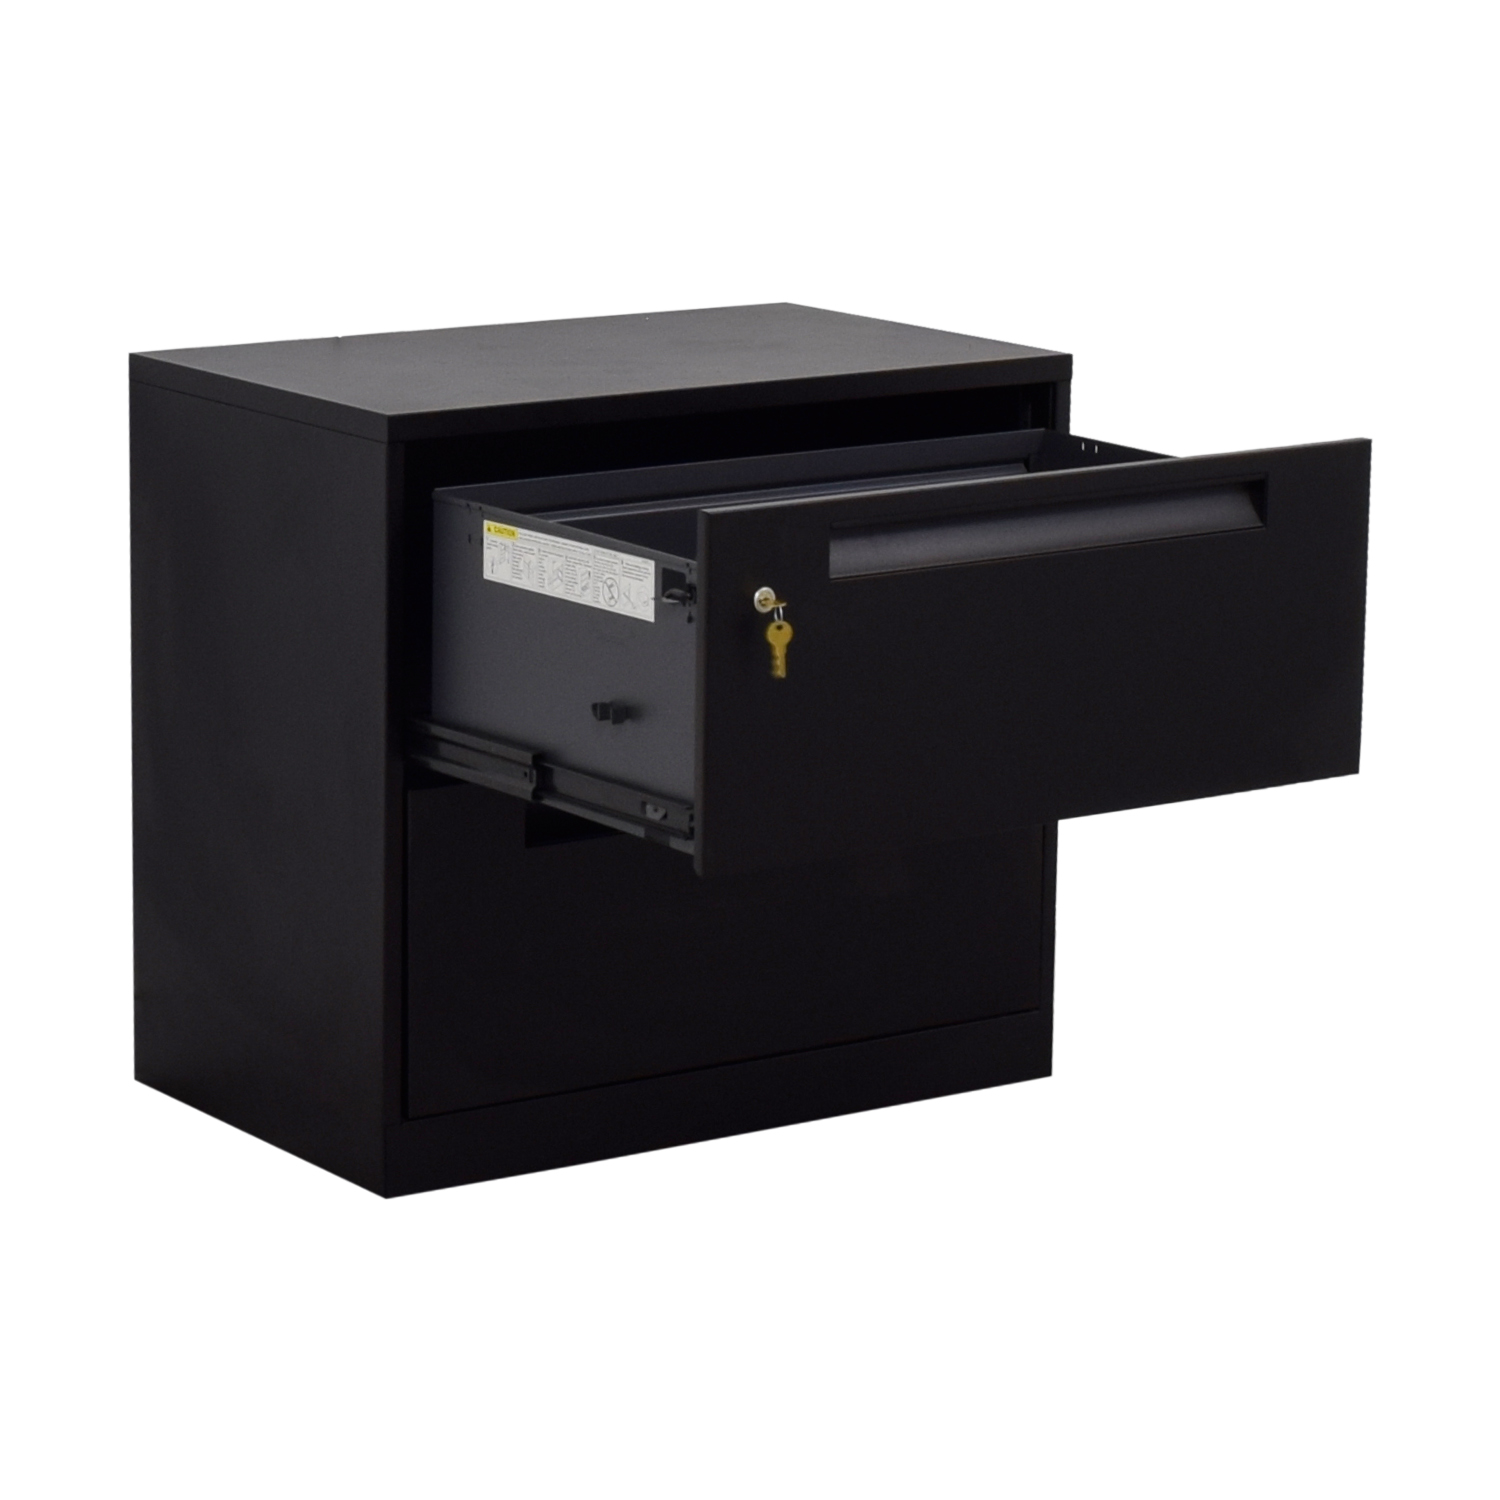 buy Steelcase Steelcase Black Lateral Two-Drawer File Cabinet online